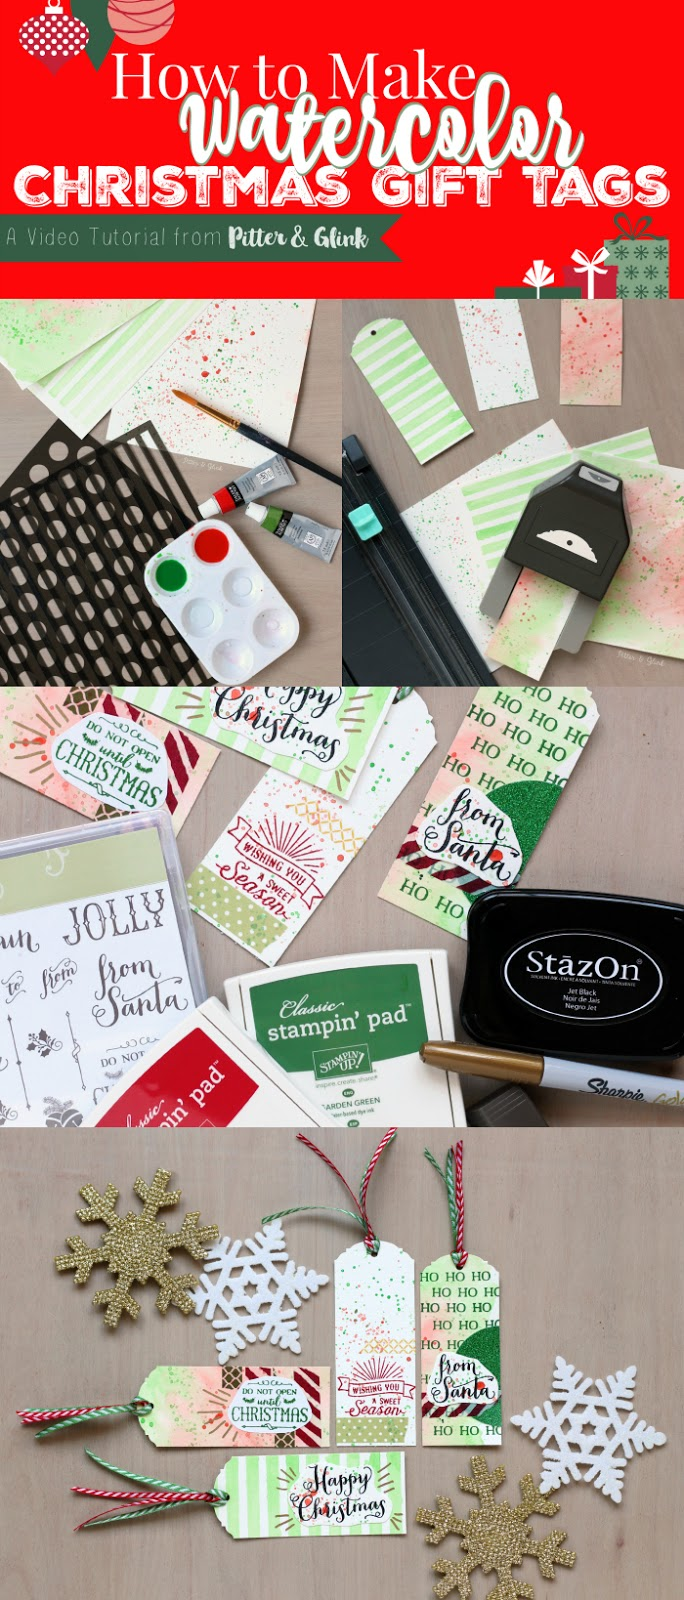 Create beautiful Watercolor Christmas Gift Tags to add a handmade touch to store-bought gifts. www.pitterandglink.com